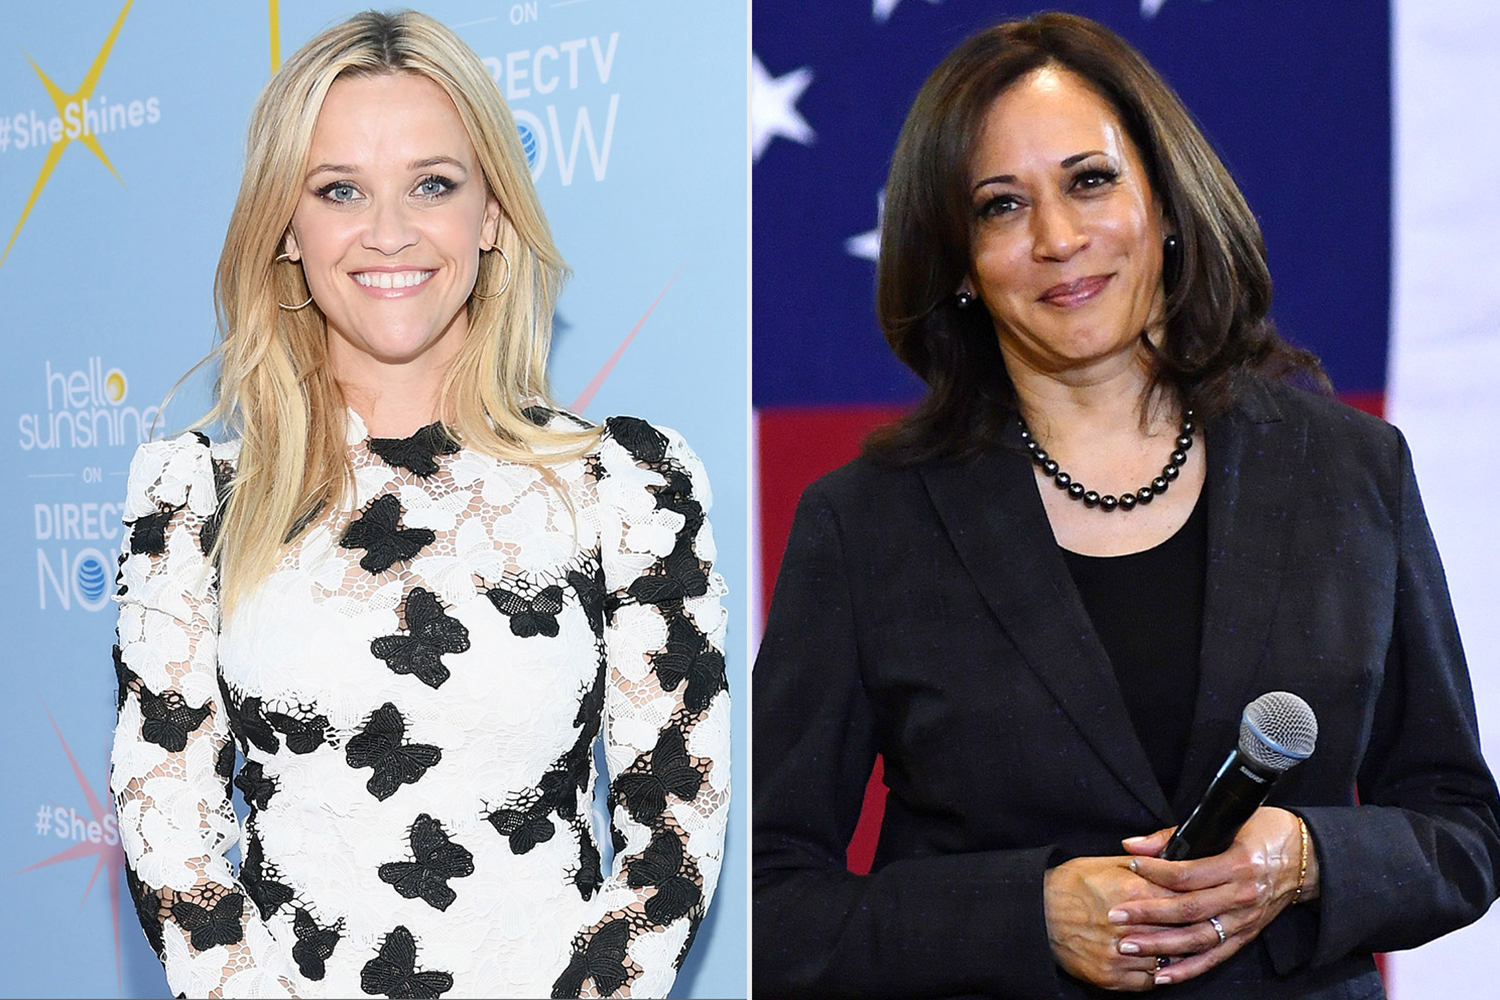 Reese Witherspoon and Kamala Harris